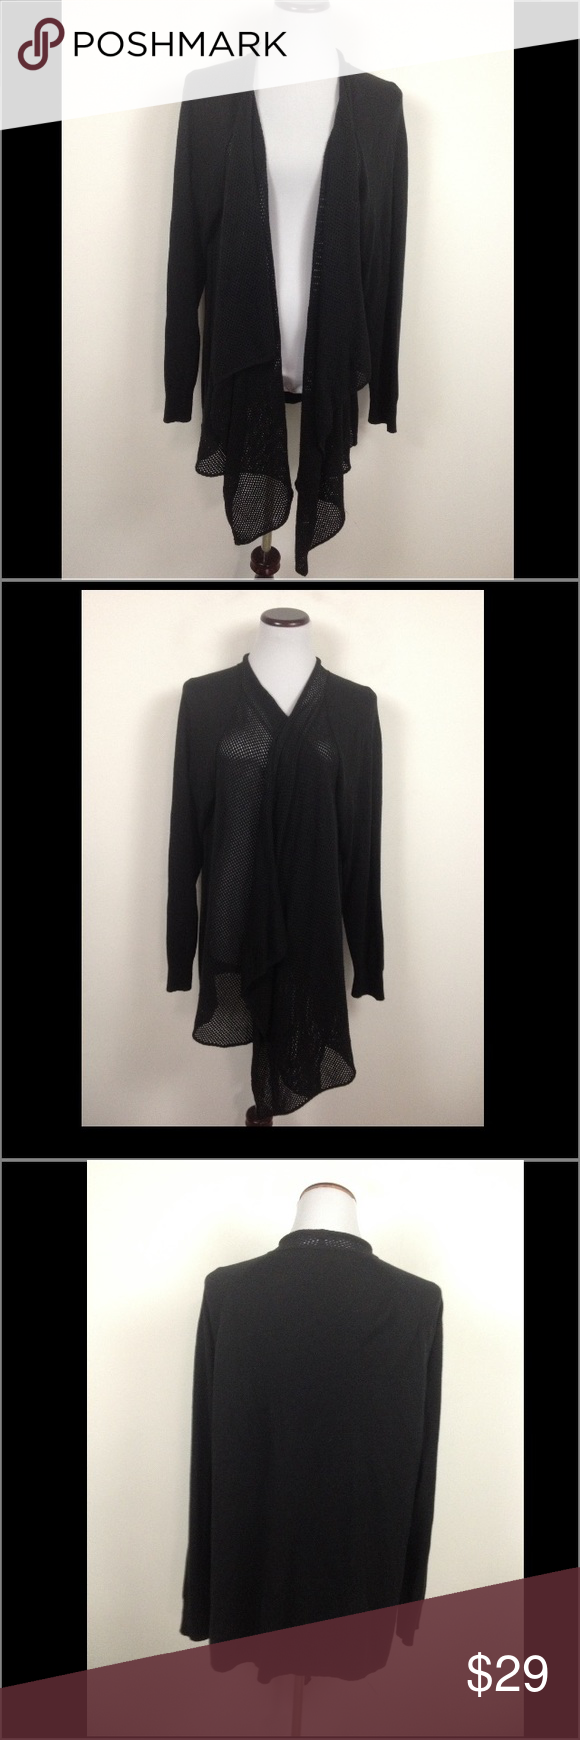 Black wrap cardigan sweater 2x Great wrap in near perfect condition with no issues. It is lightweight and has a mesh like front with knit arms and back. No pockets or closures. Nice and simple. Size 2X. Smoke free home! a.n.a Sweaters Cardigans